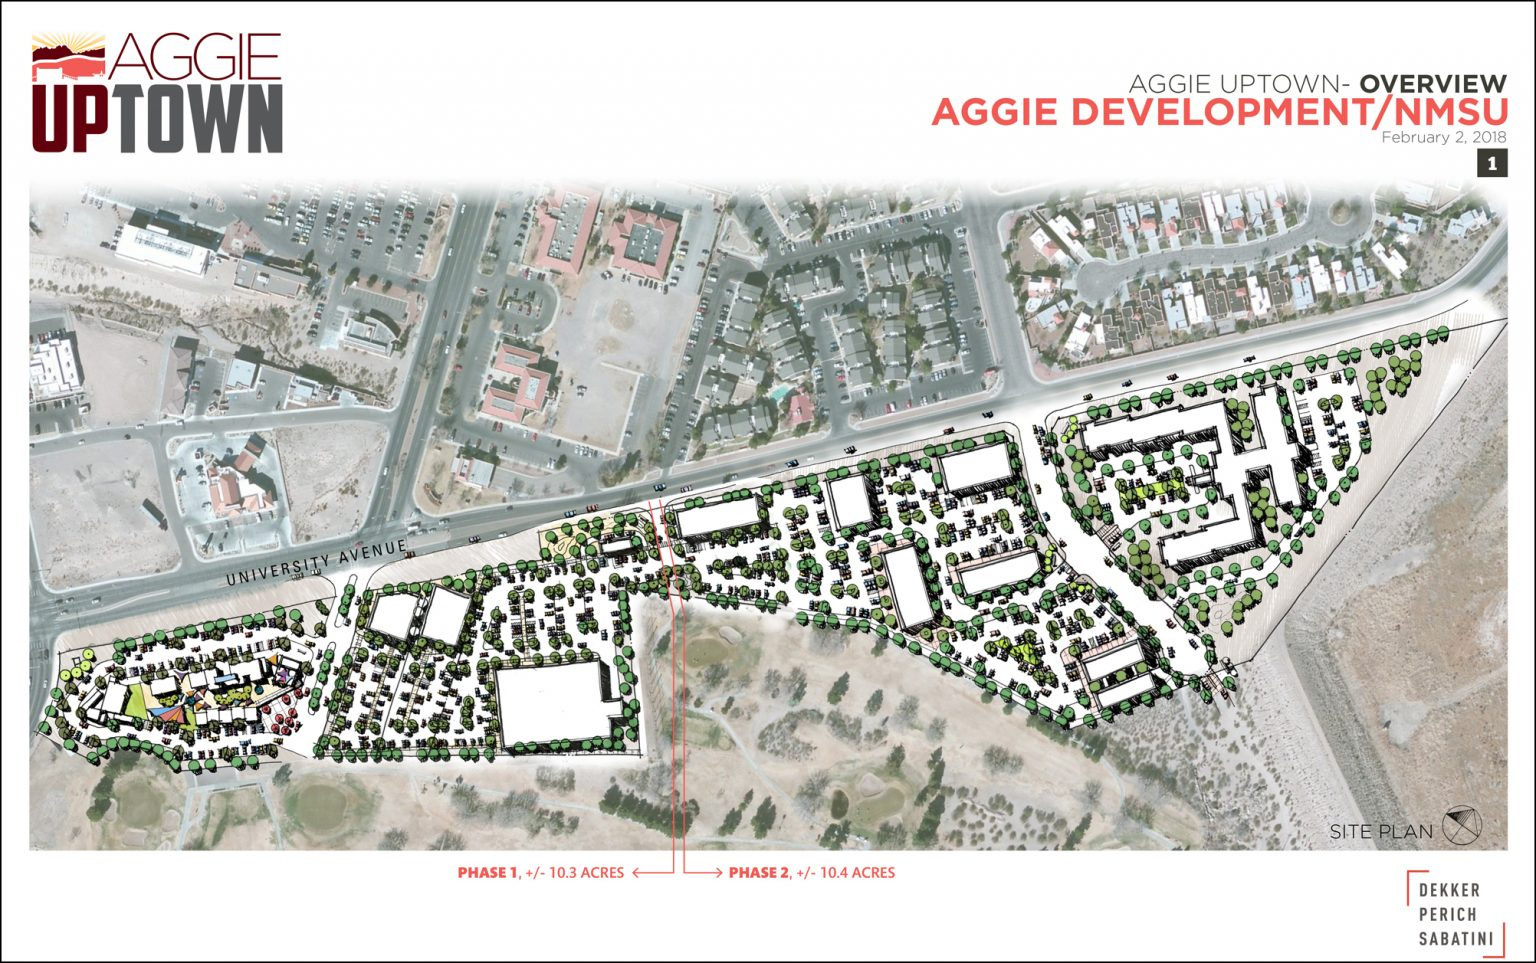 NMSUs Aggie Development Incorporated selects Developer